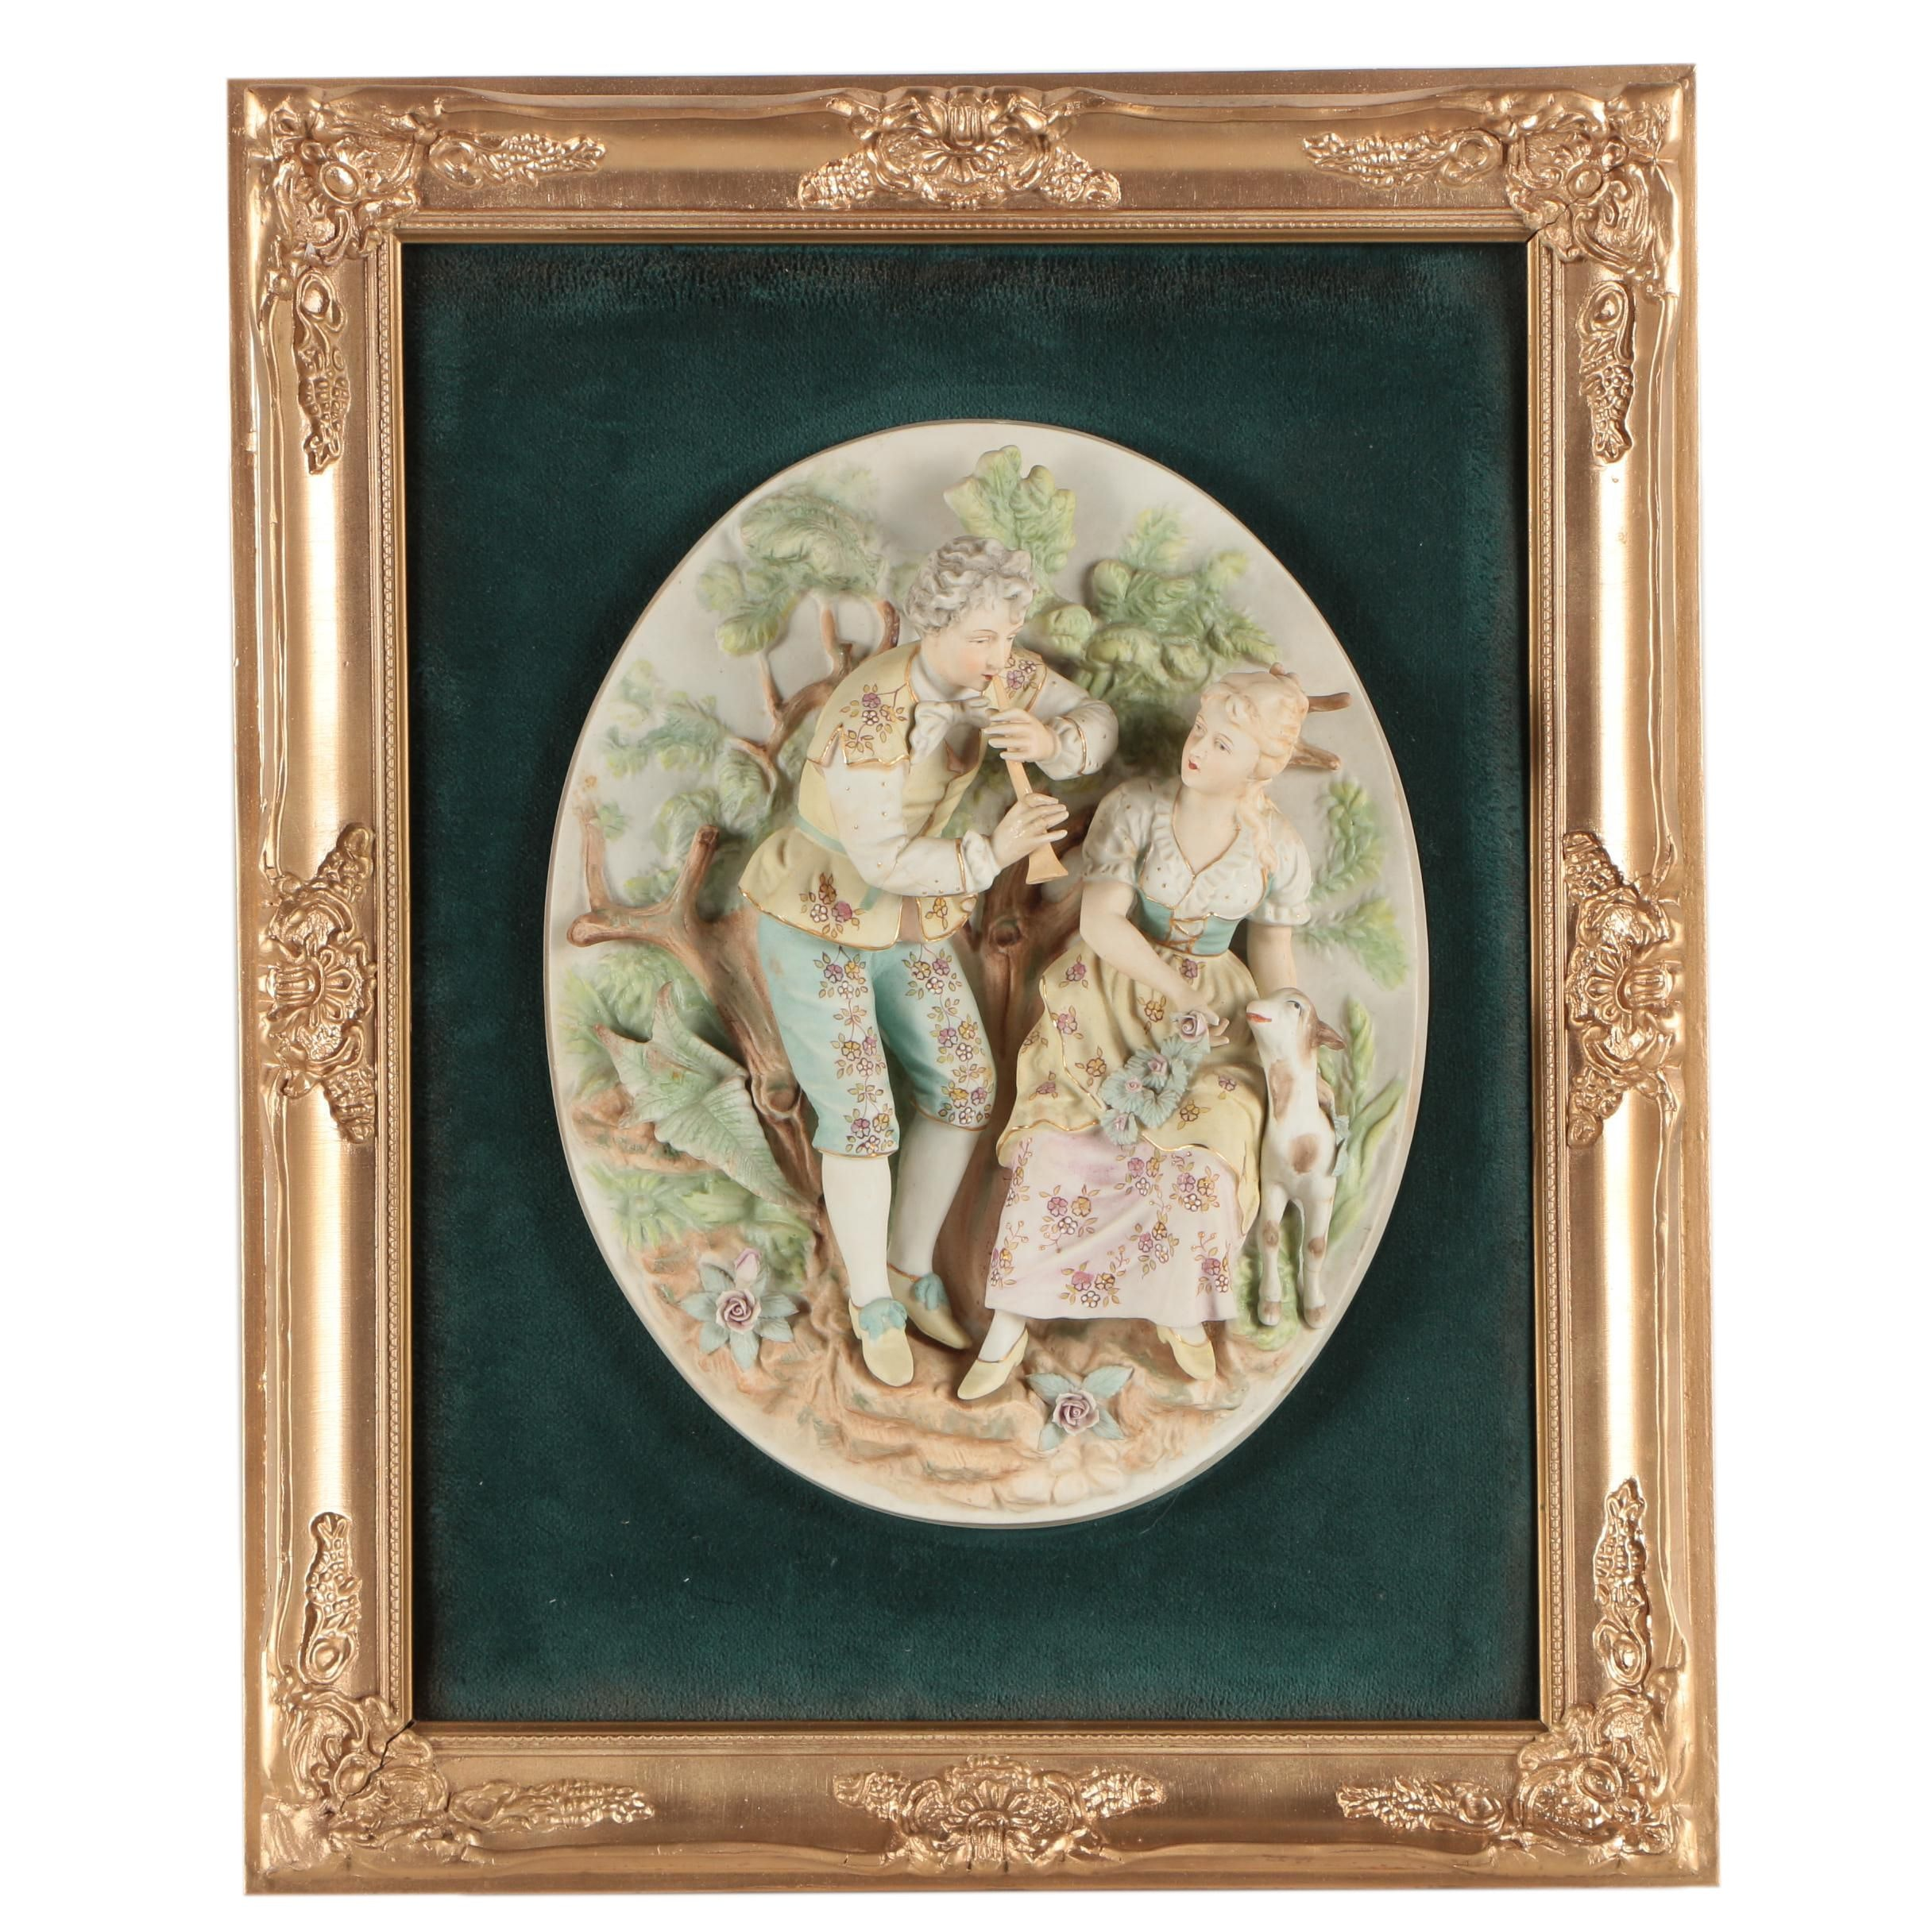 Hand Painted Porcelain Bisque Relief